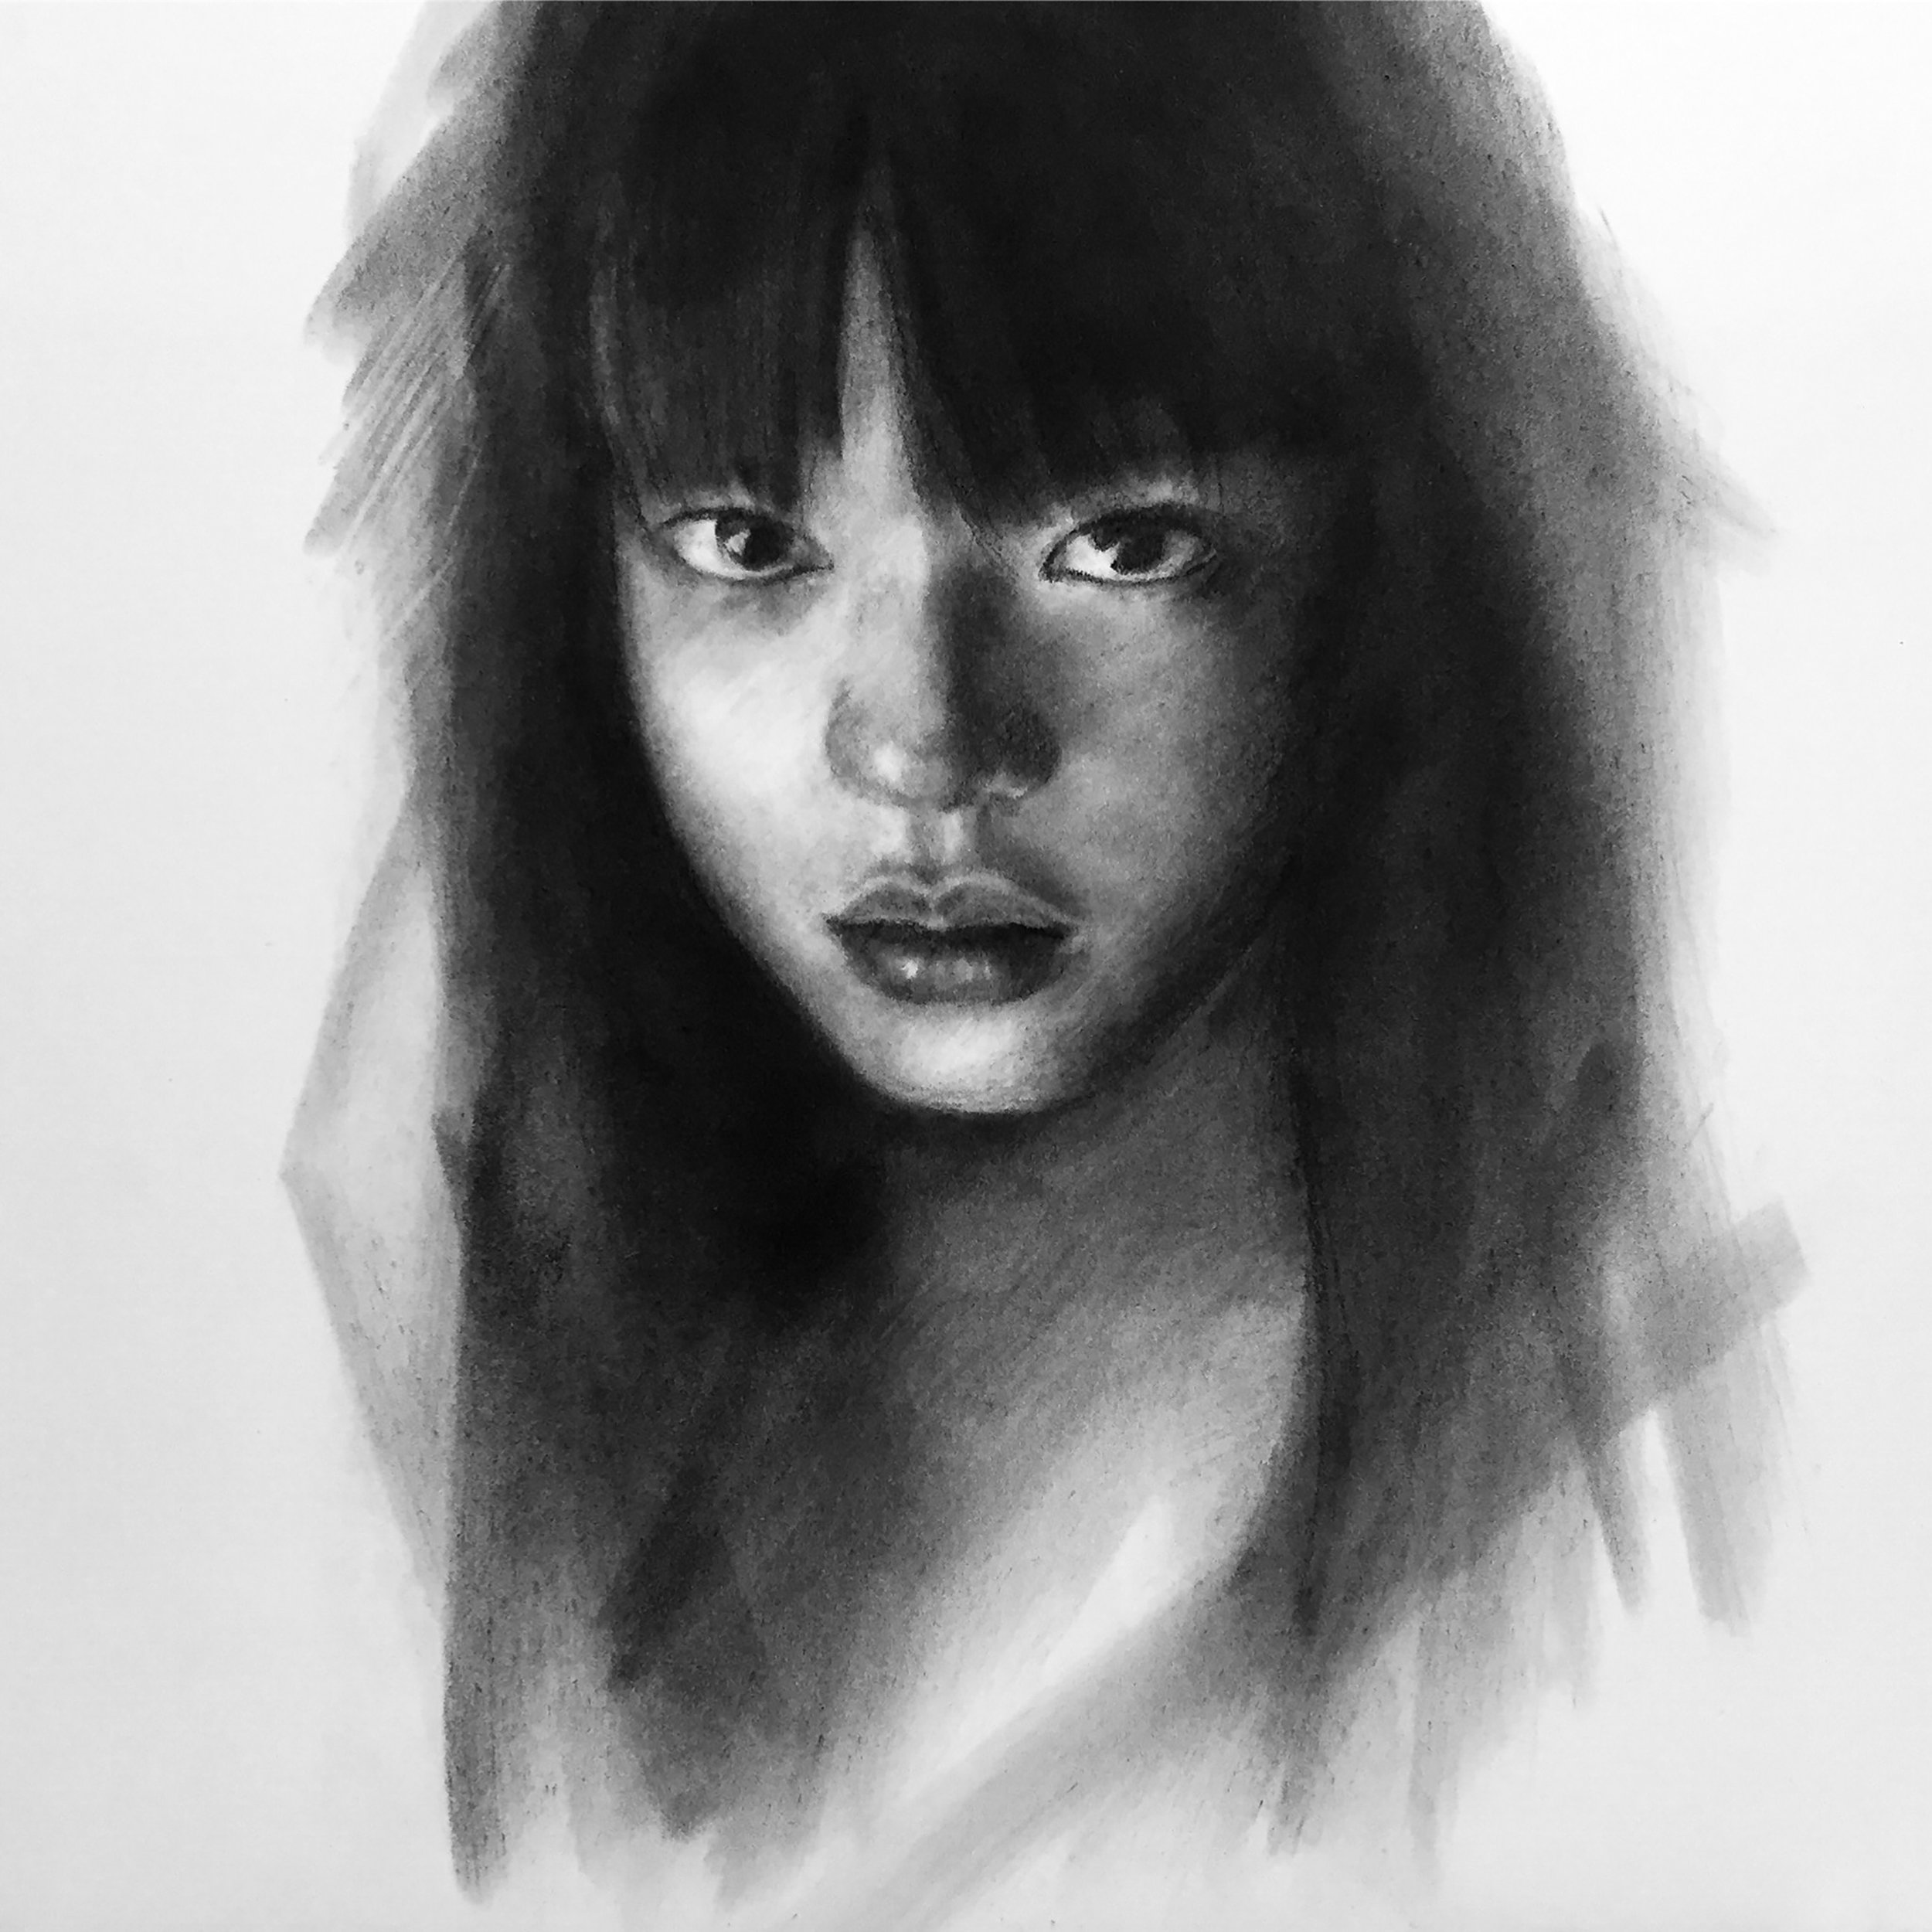 Junyi_Liu_The Gaze_charcoal on paper_12x12in_2017.jpg